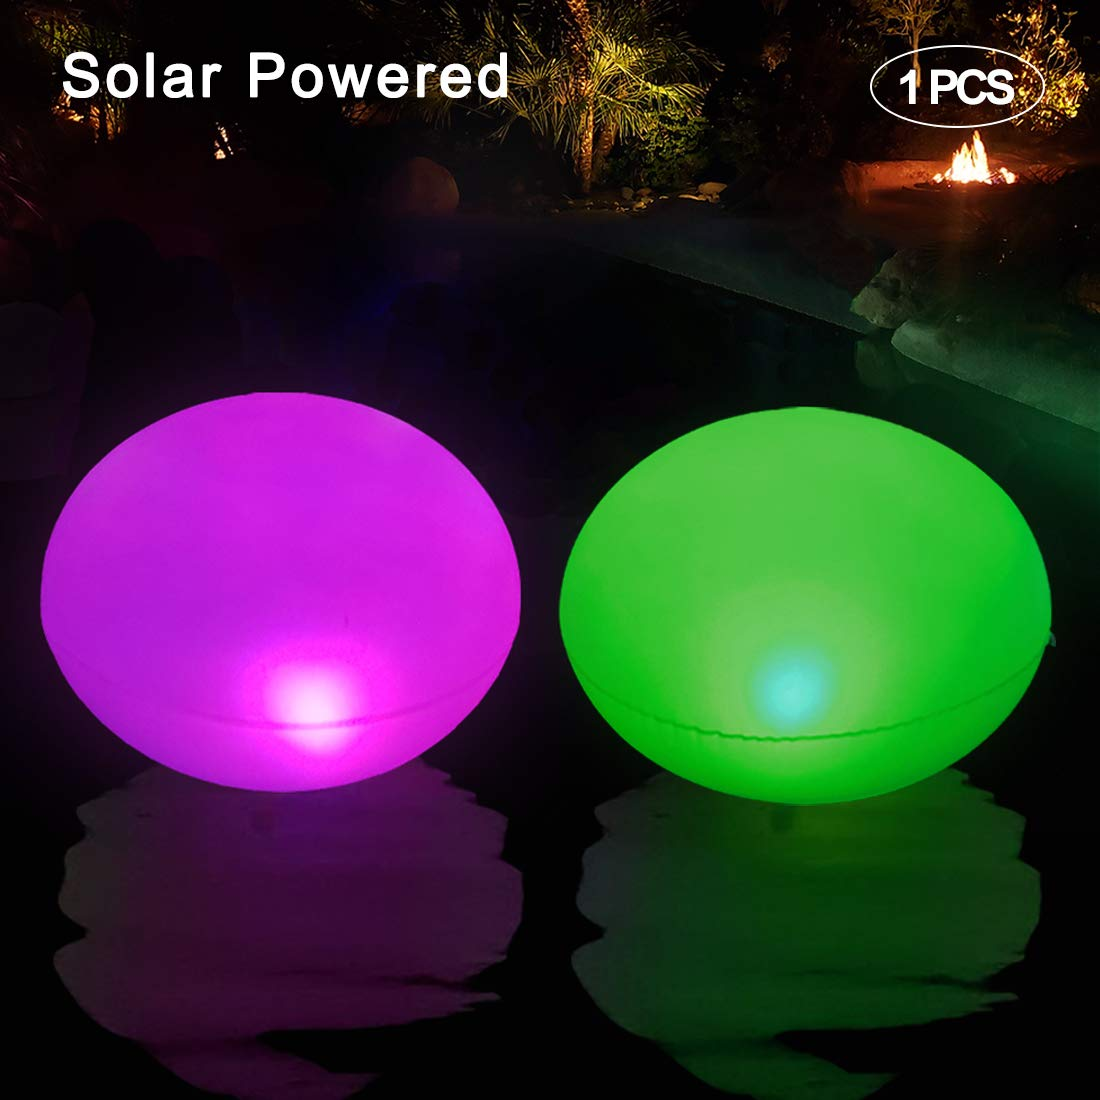 Luces Solares Flotante e Inflable, Luz LED para piscina, IP68 Impermeable Luz Solar de Jardín, luz LED Cambia Color al Aire Libre Decoración para Estanques, Boda, Fiesta, Playa, Césped, Camino 1 PCS: